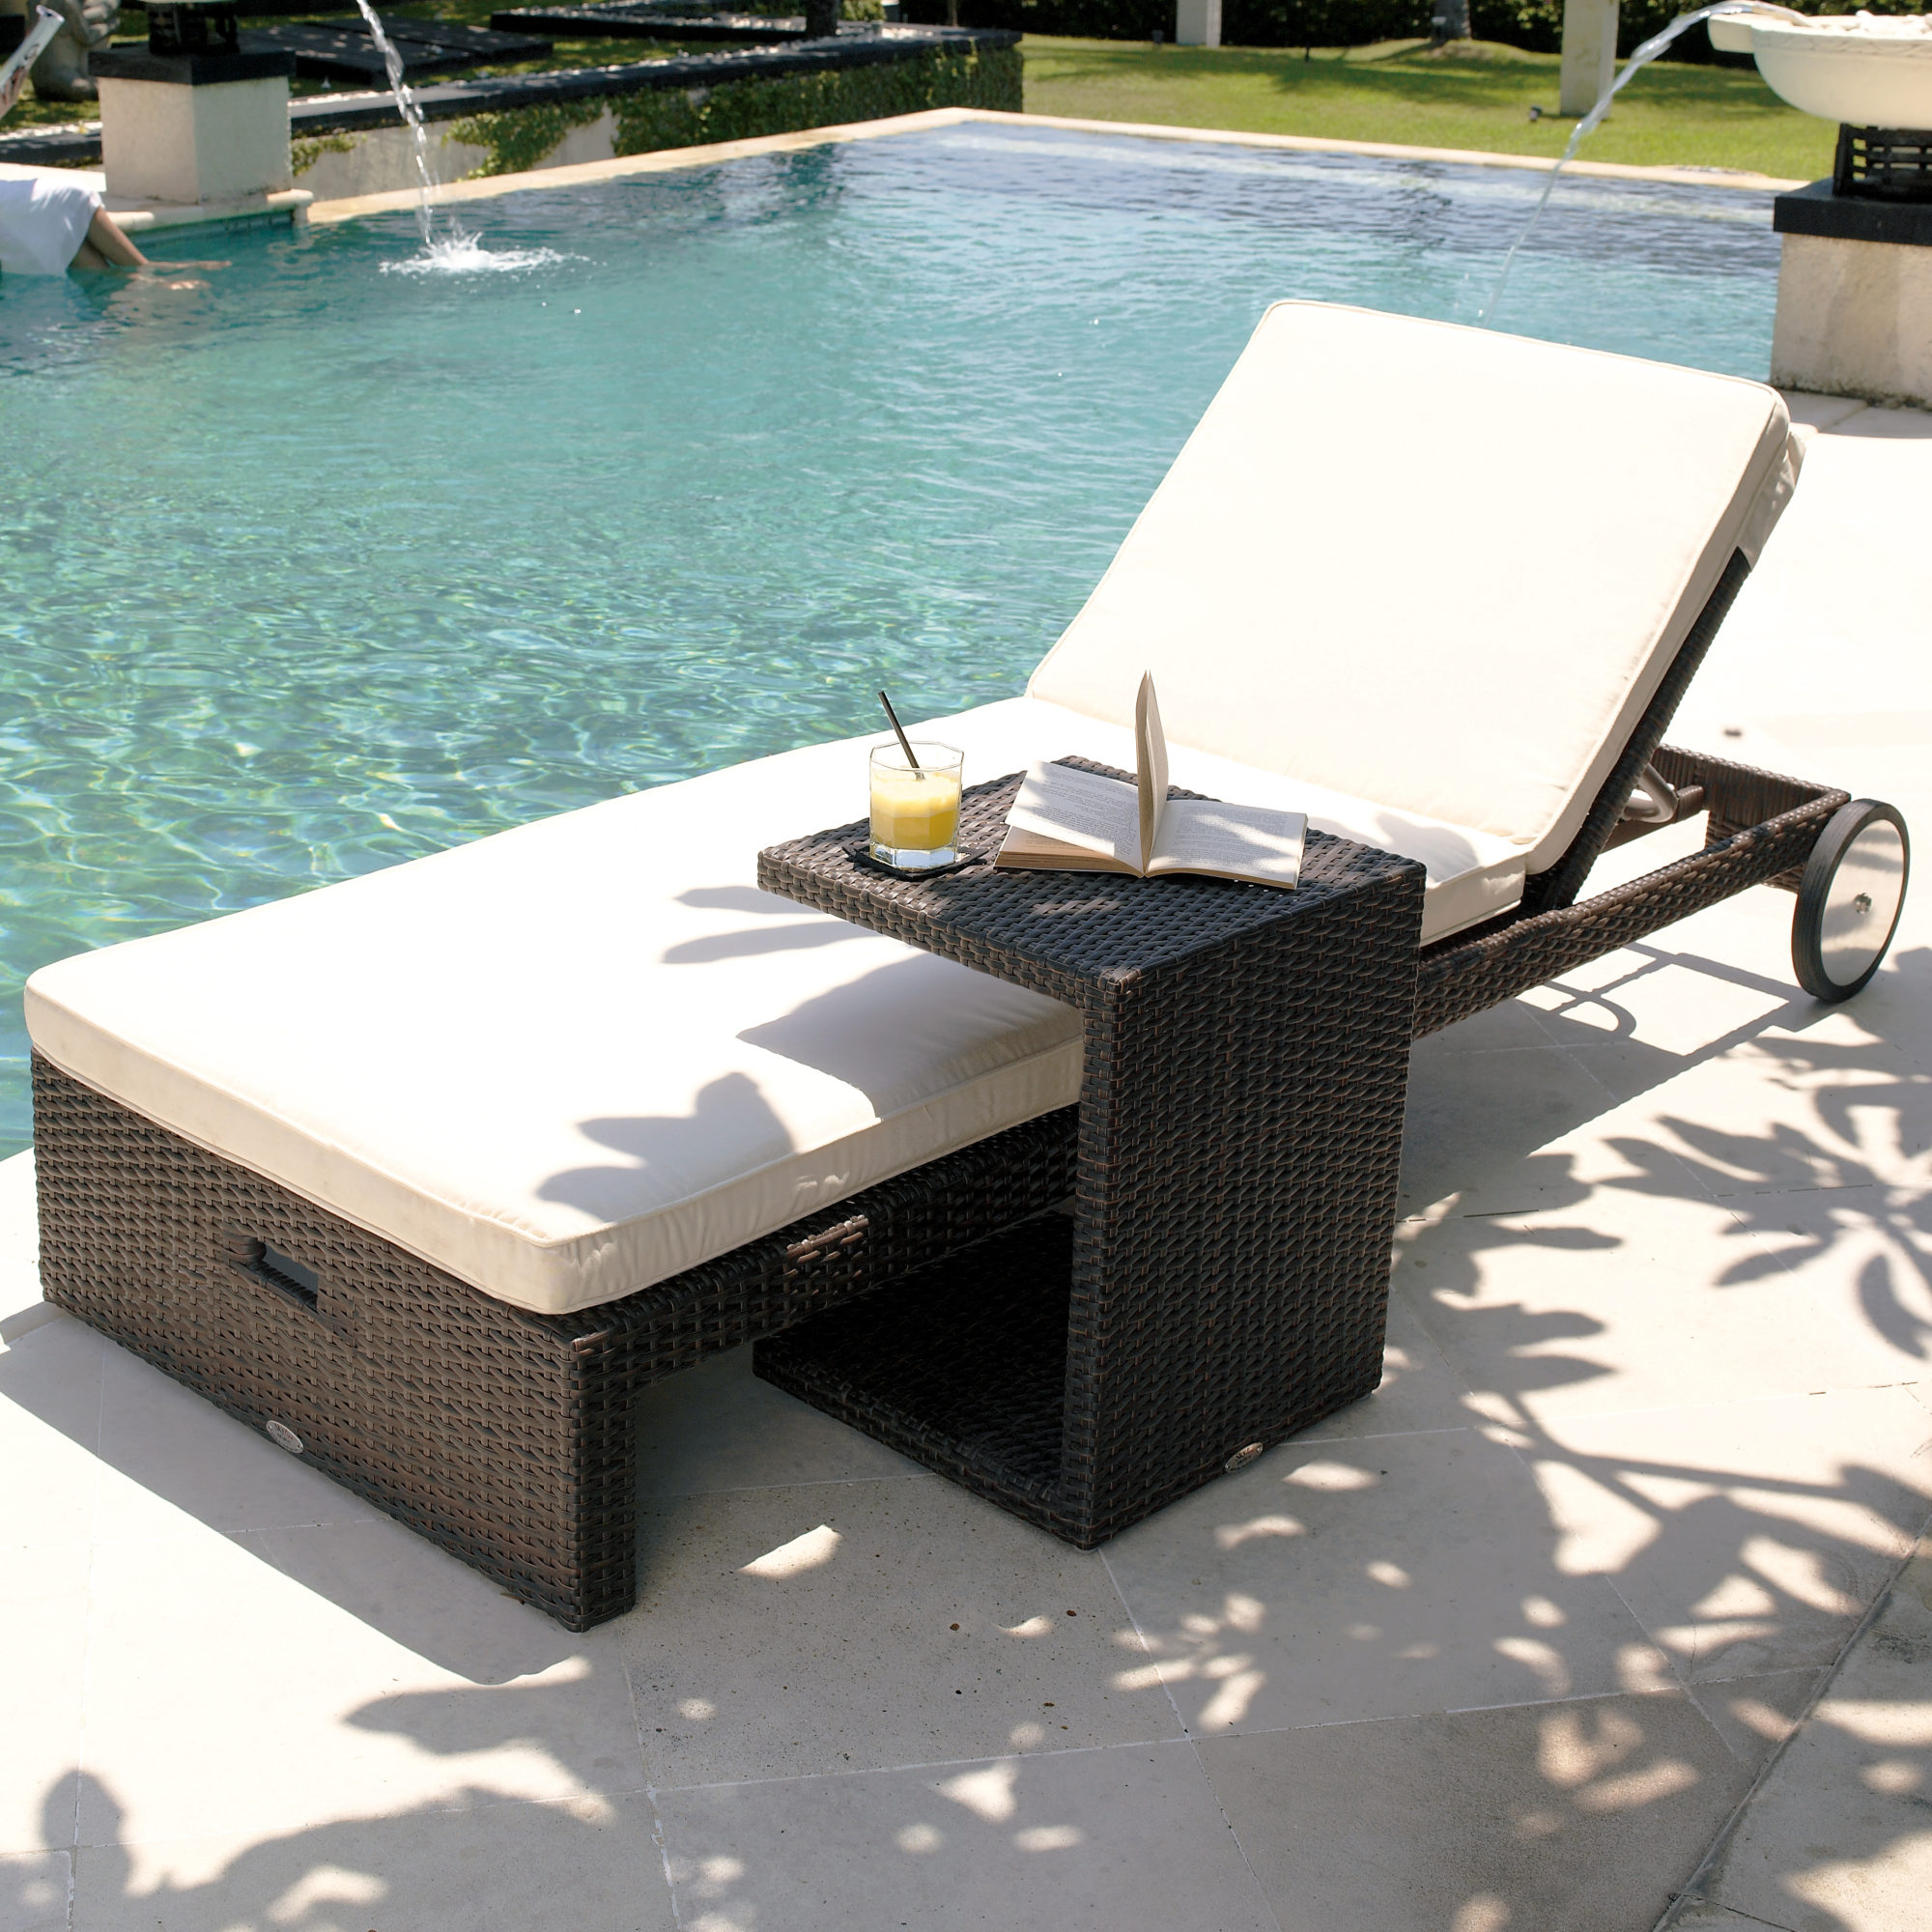 Chaise Lounge Outdoor.Cuatro Chaise Lounge Side Table